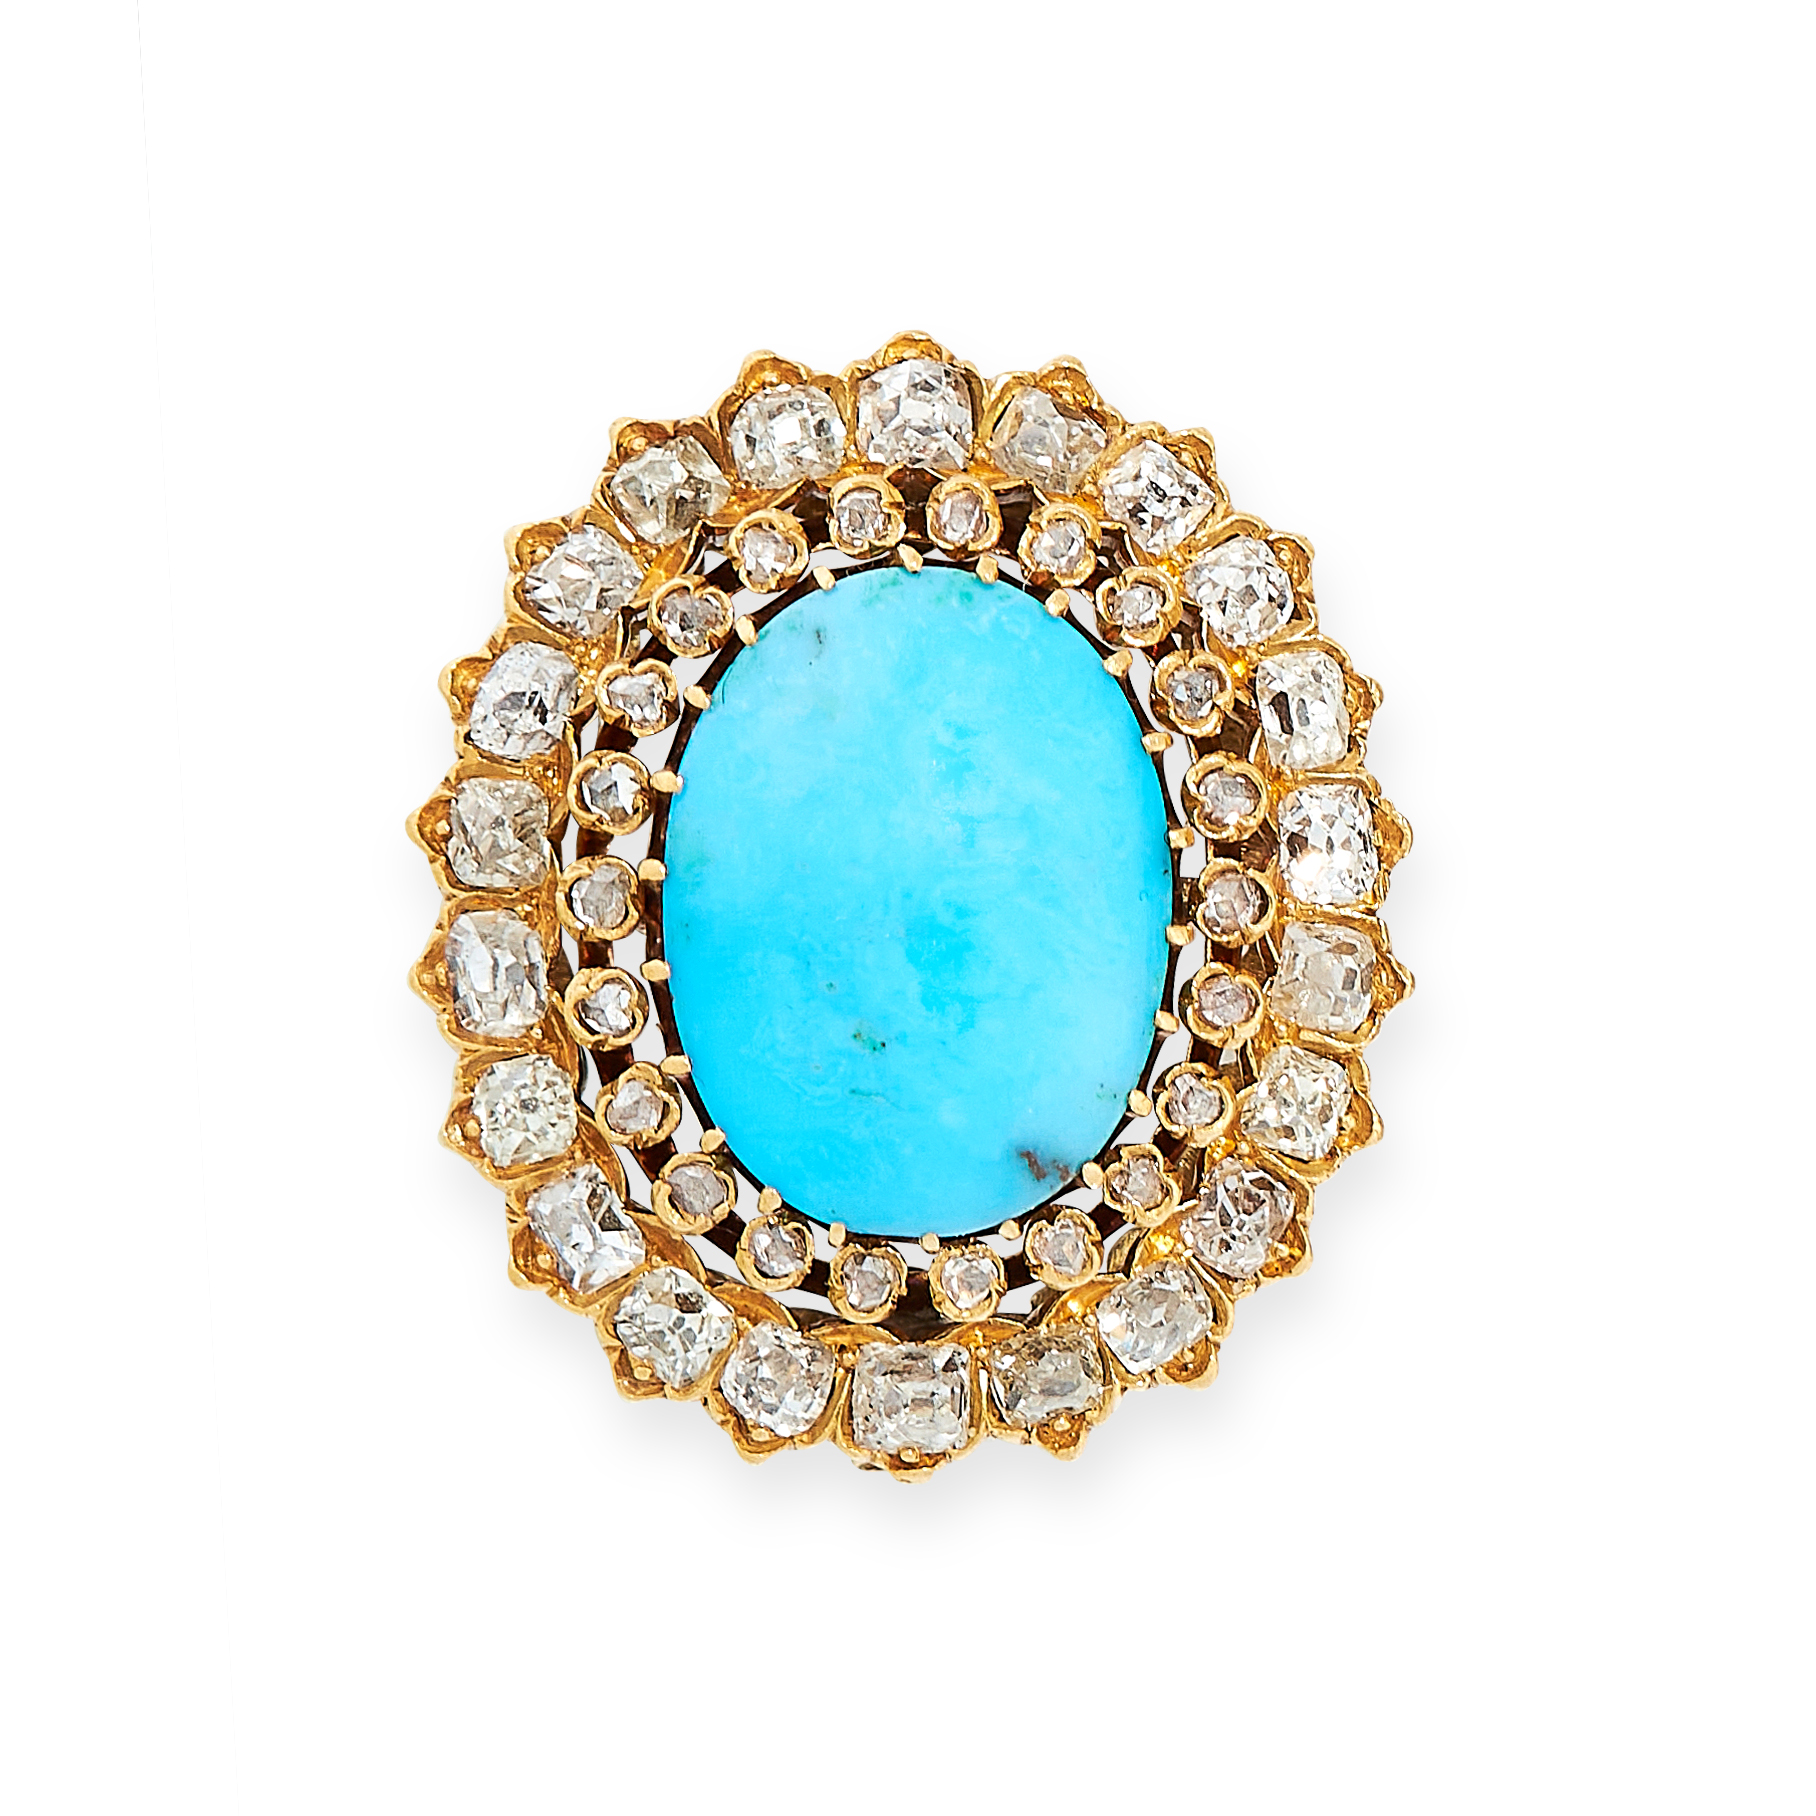 ANTIQUE TURQUOISE AND DIAMOND BROOCH, 19TH CENTURY in yellow gold, set with a cabochon turquoise